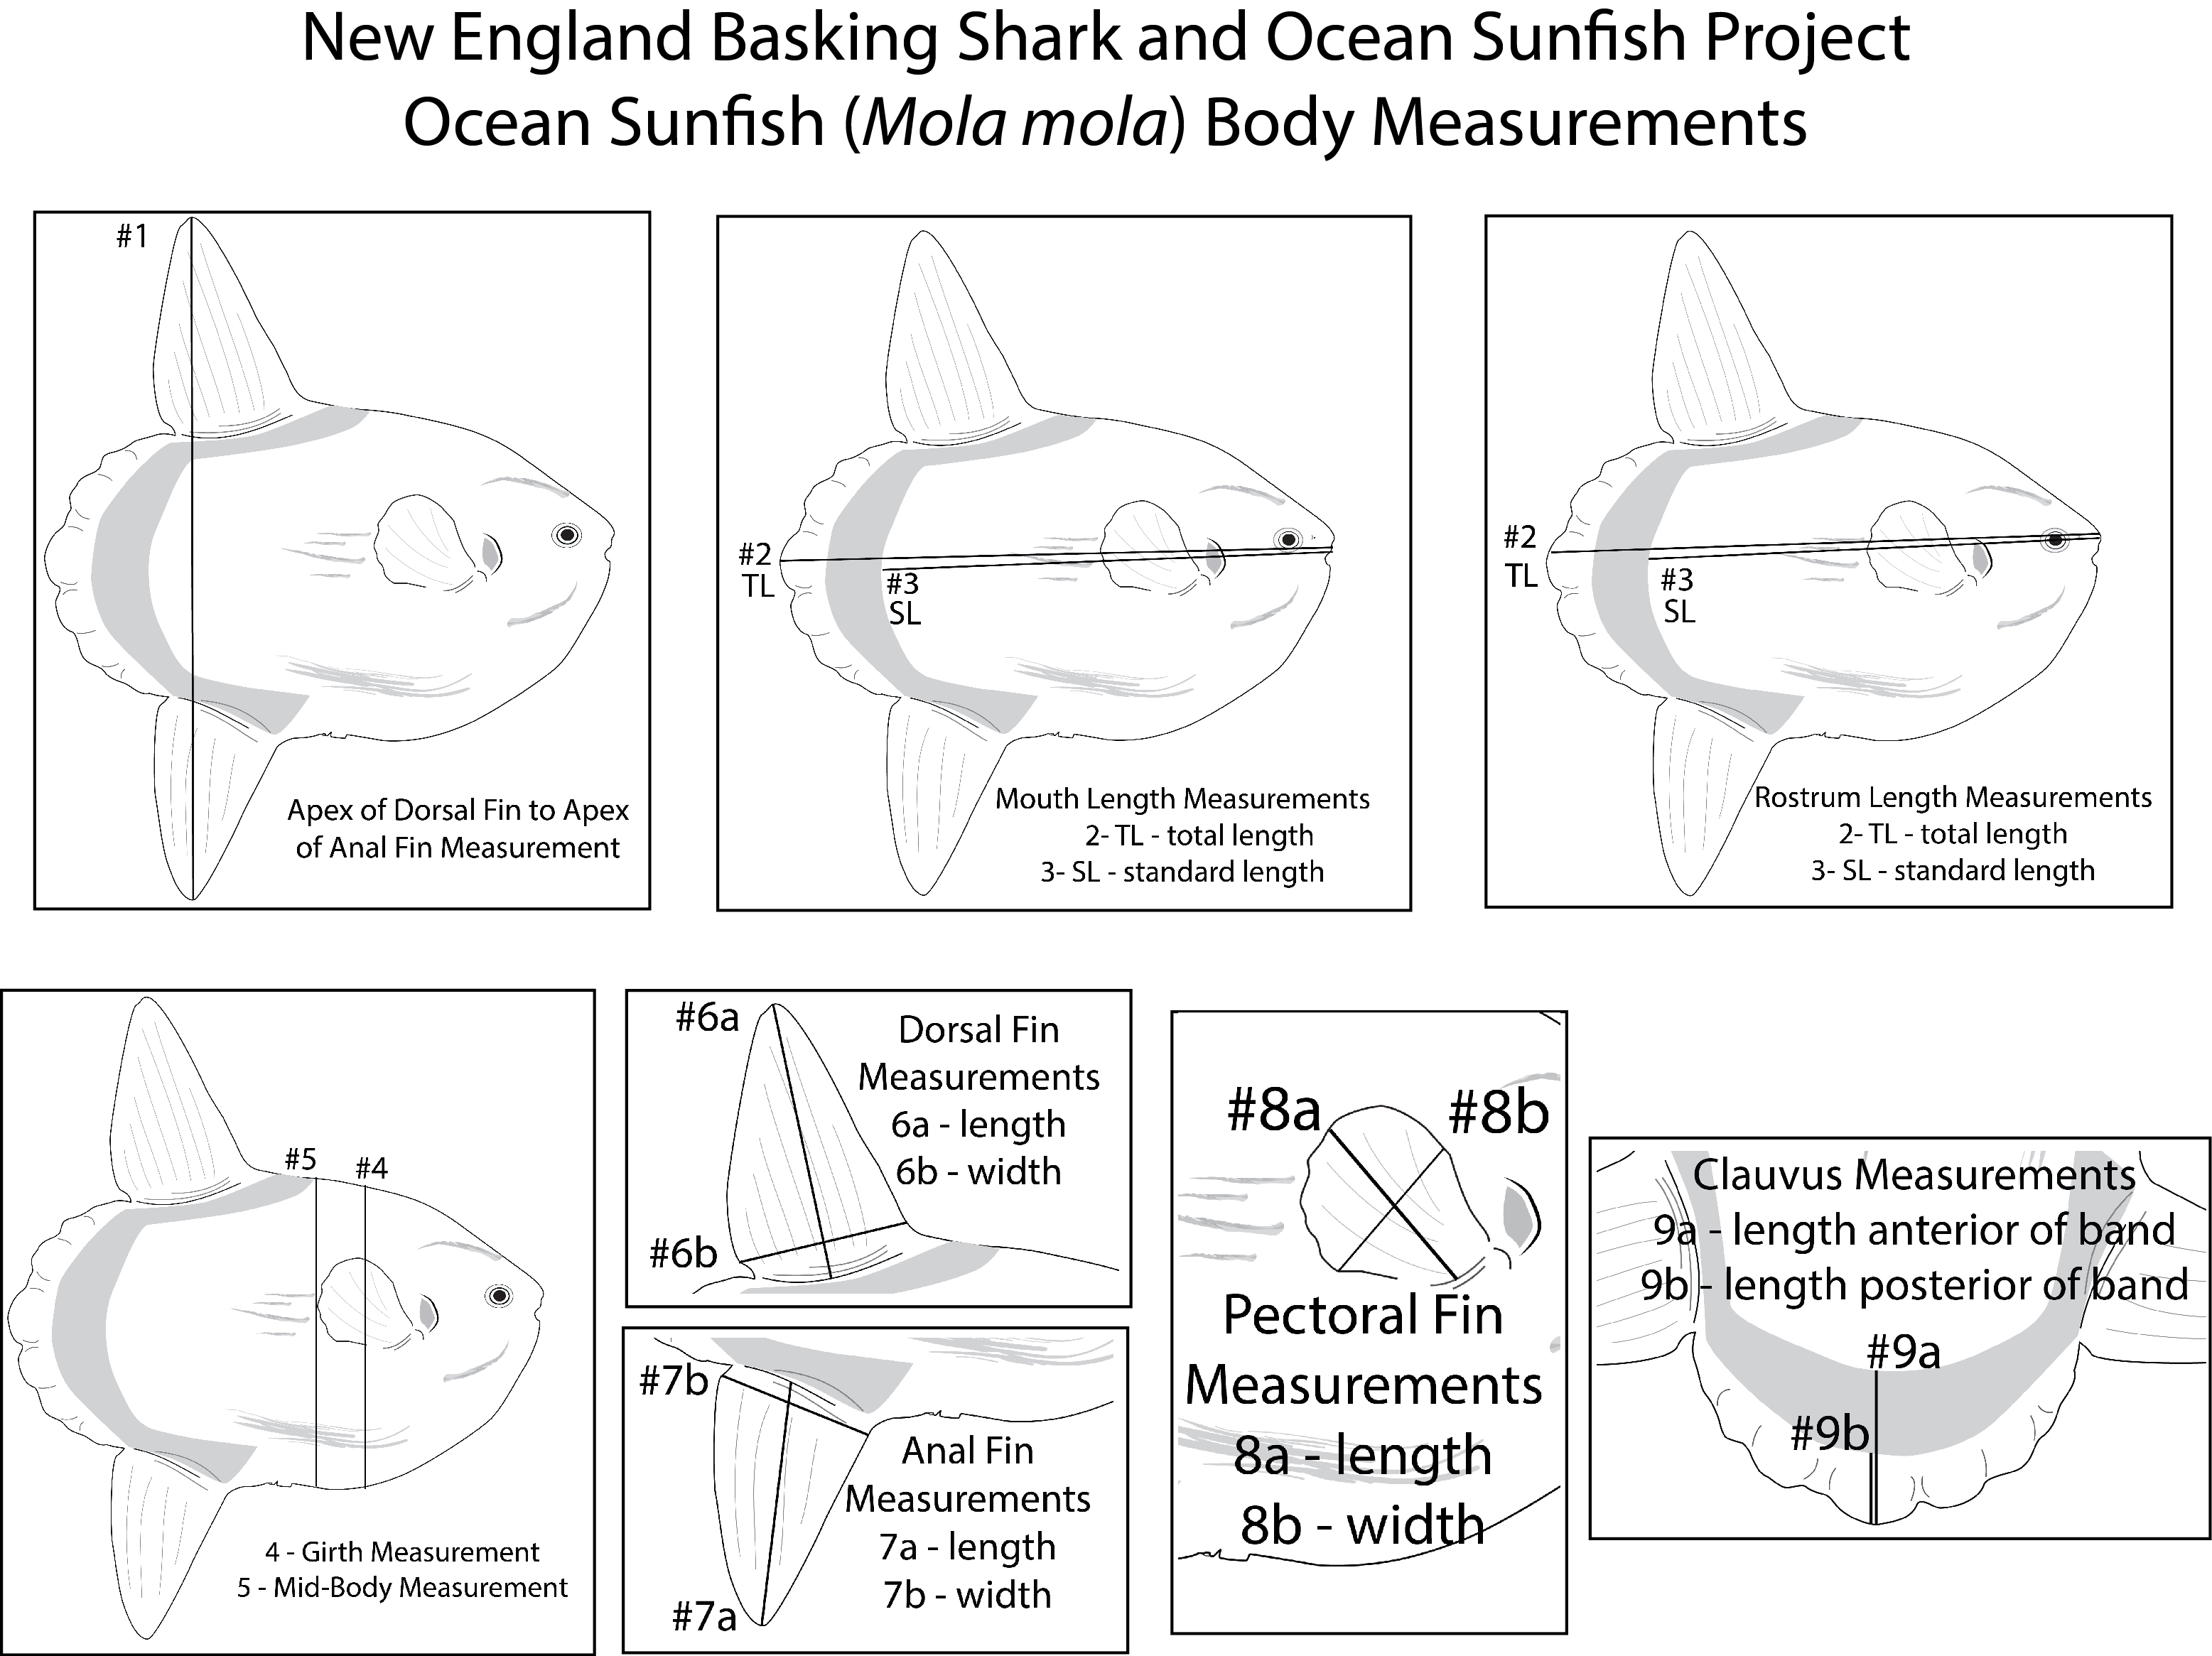 New england basking shark ocean sunfish project ocean sunfish body measurements for ocean sunfish pooptronica